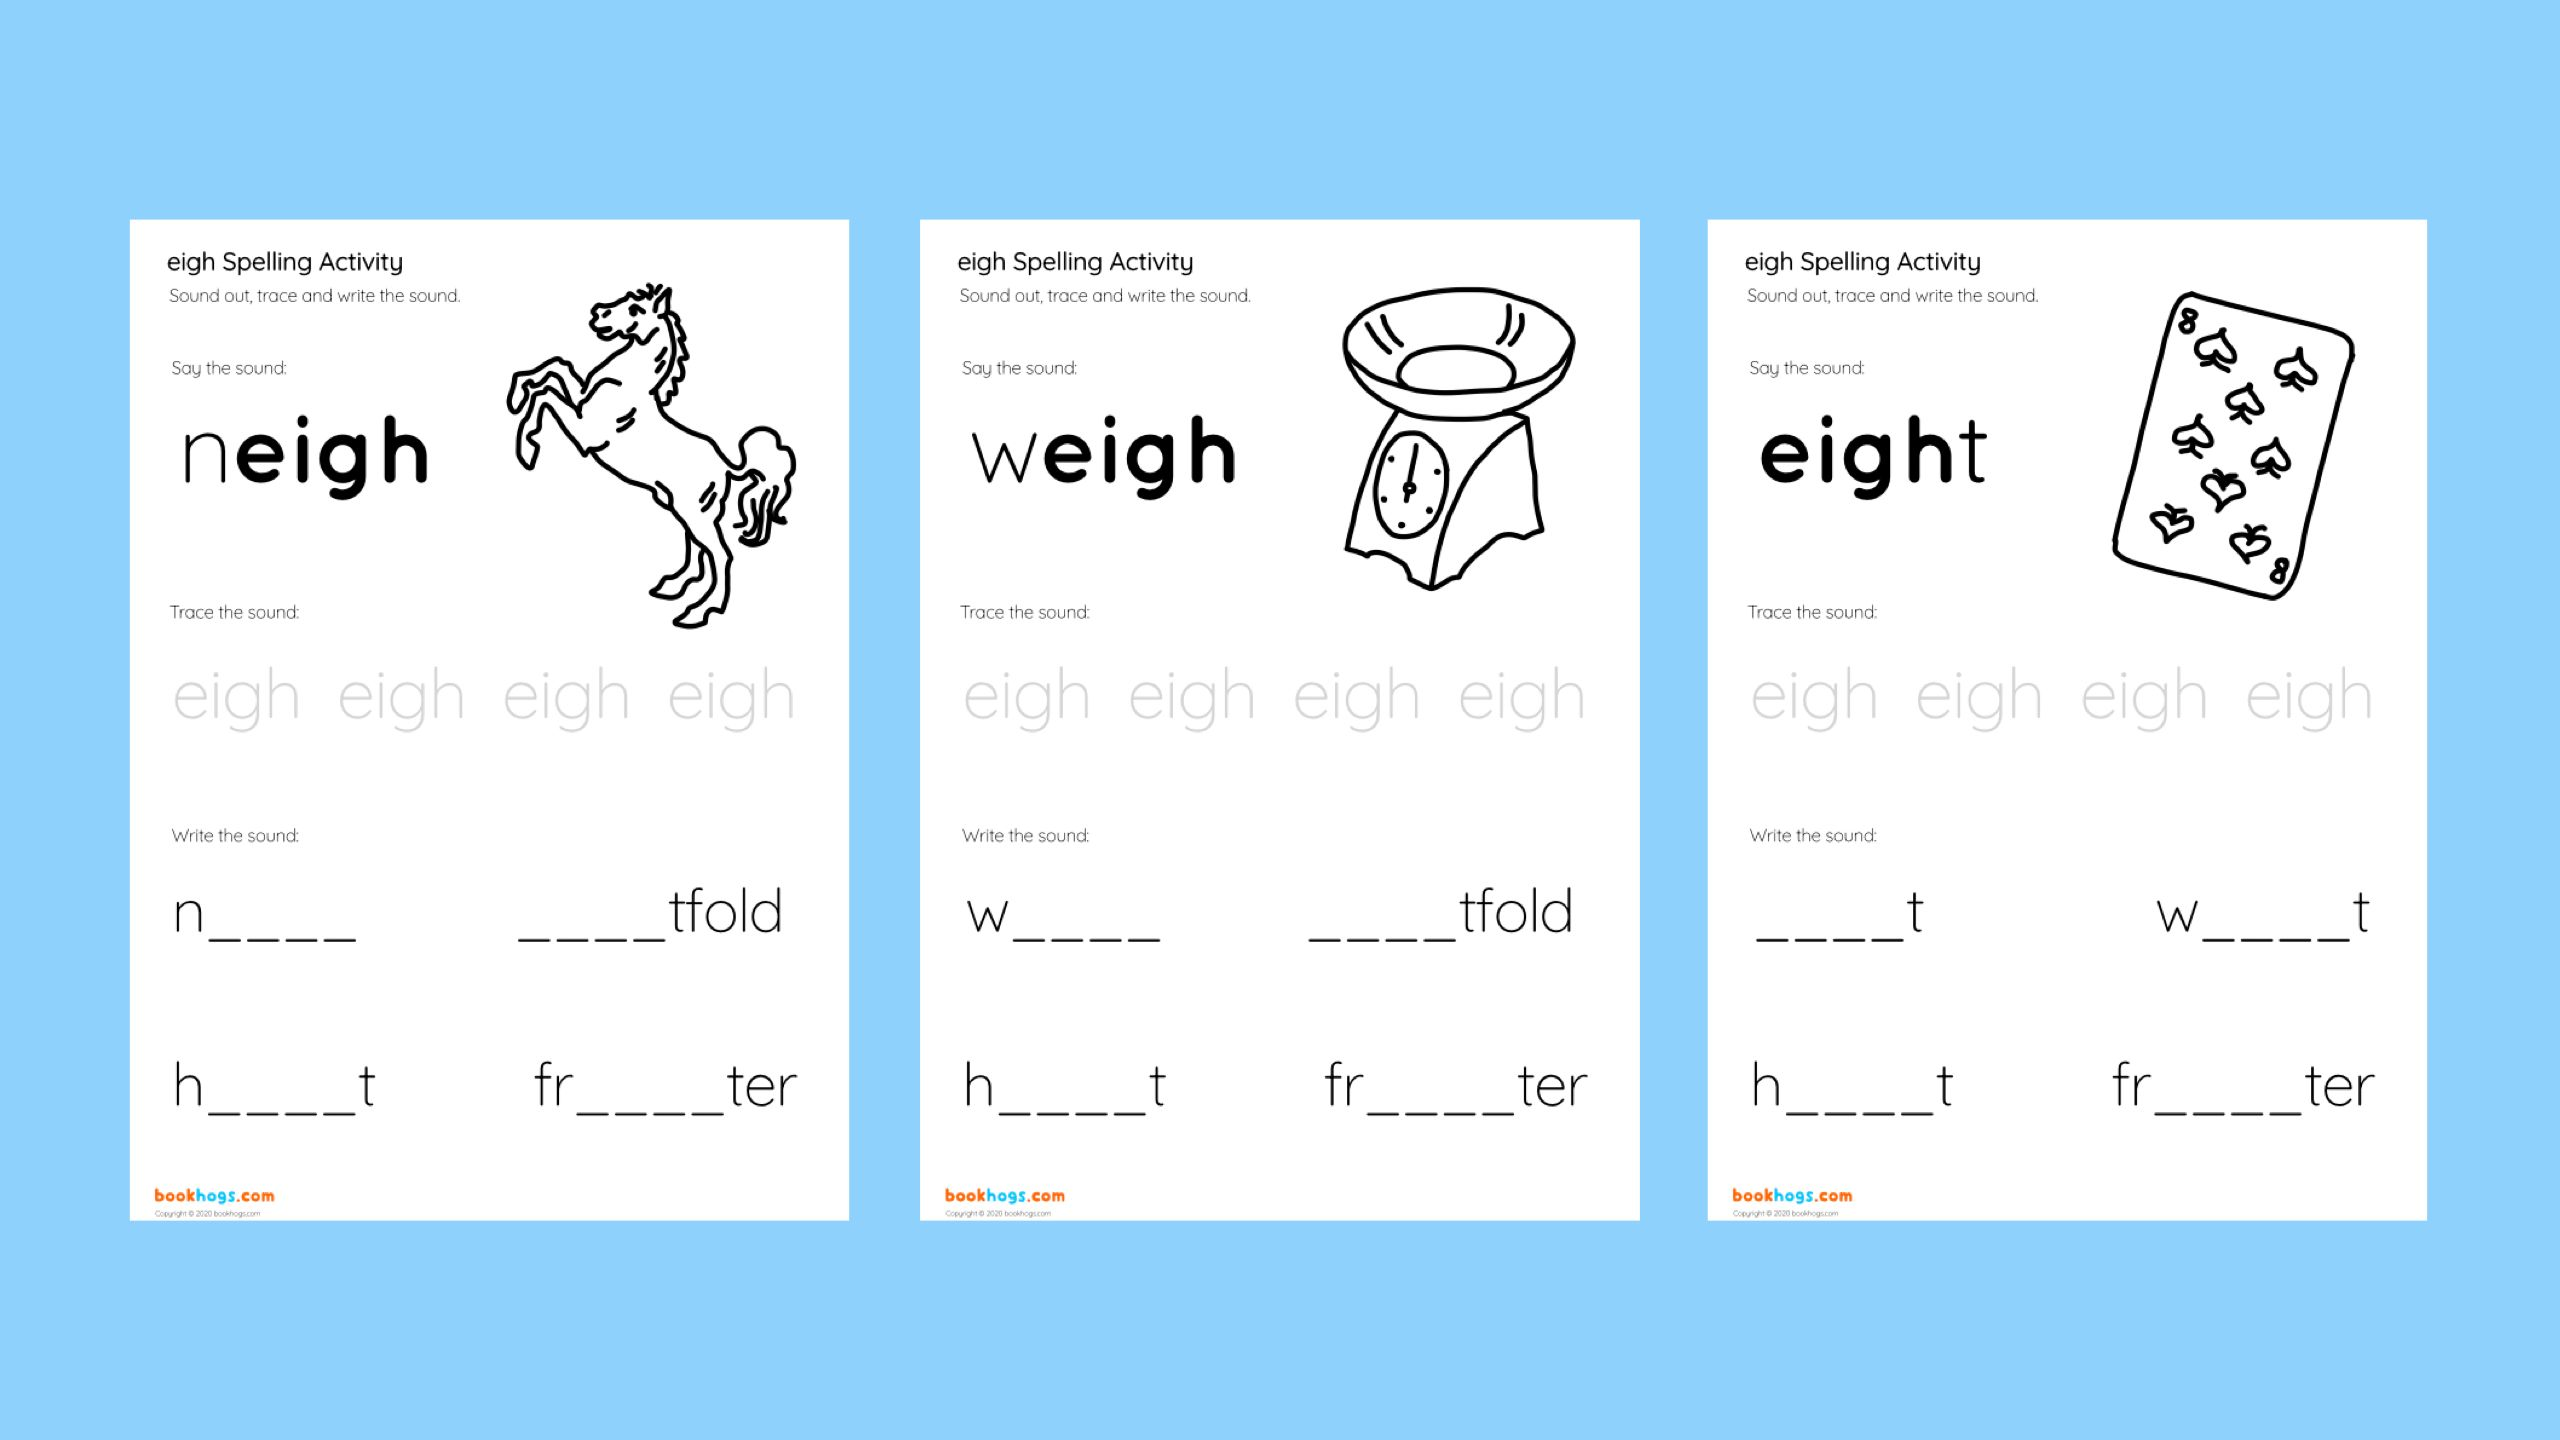 Eigh Spelling Activity Bookhogs